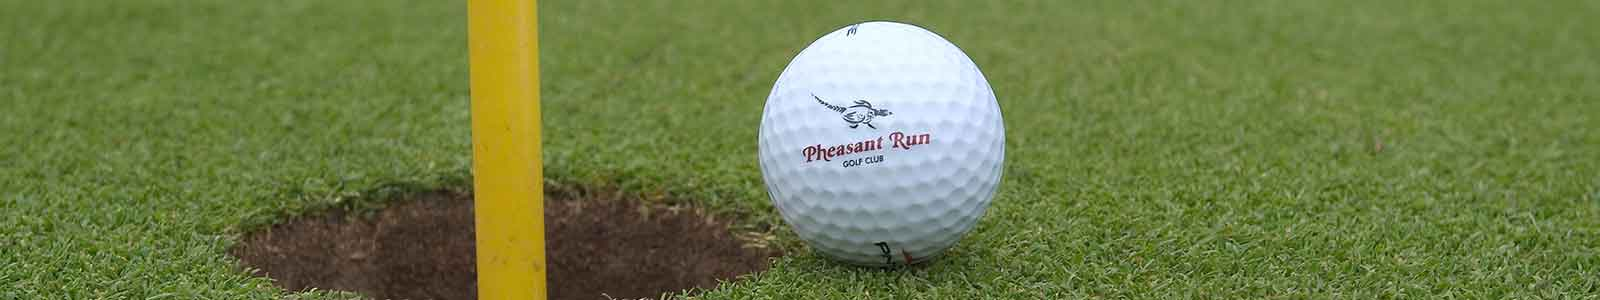 golf leagues at Pheasant Run